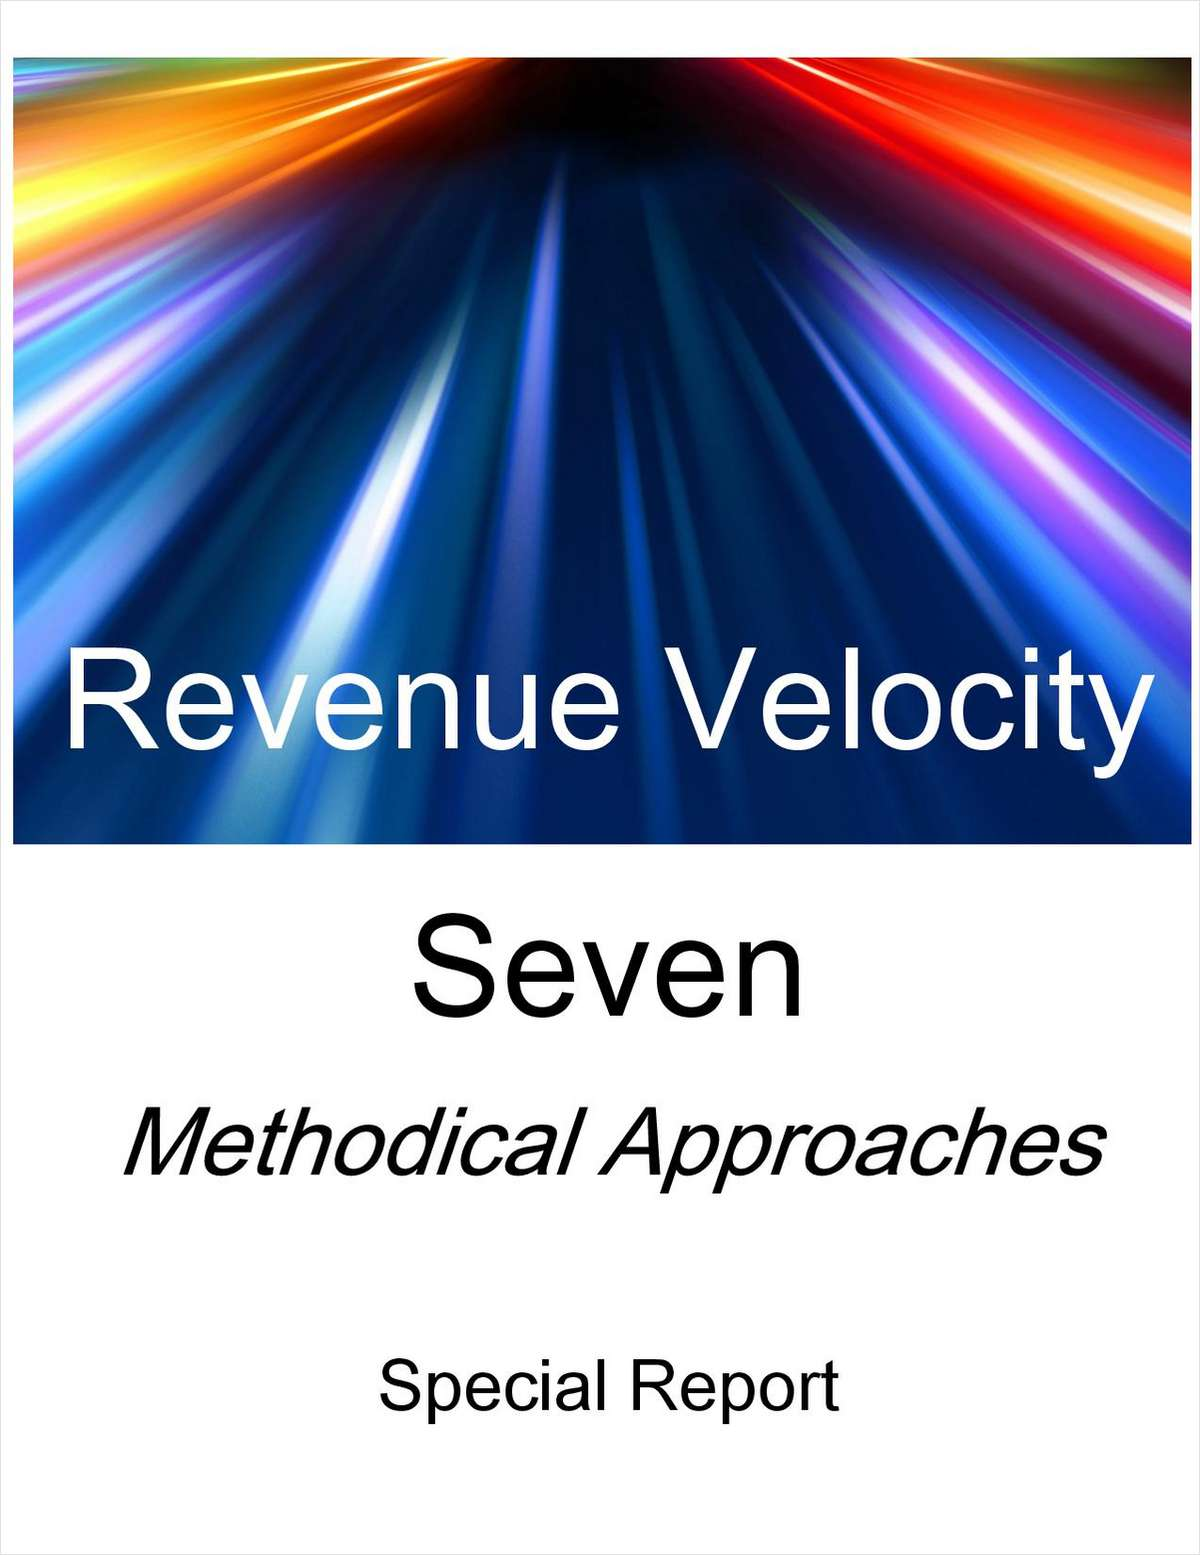 Revenue Velocity: Seven Methodical Approaches